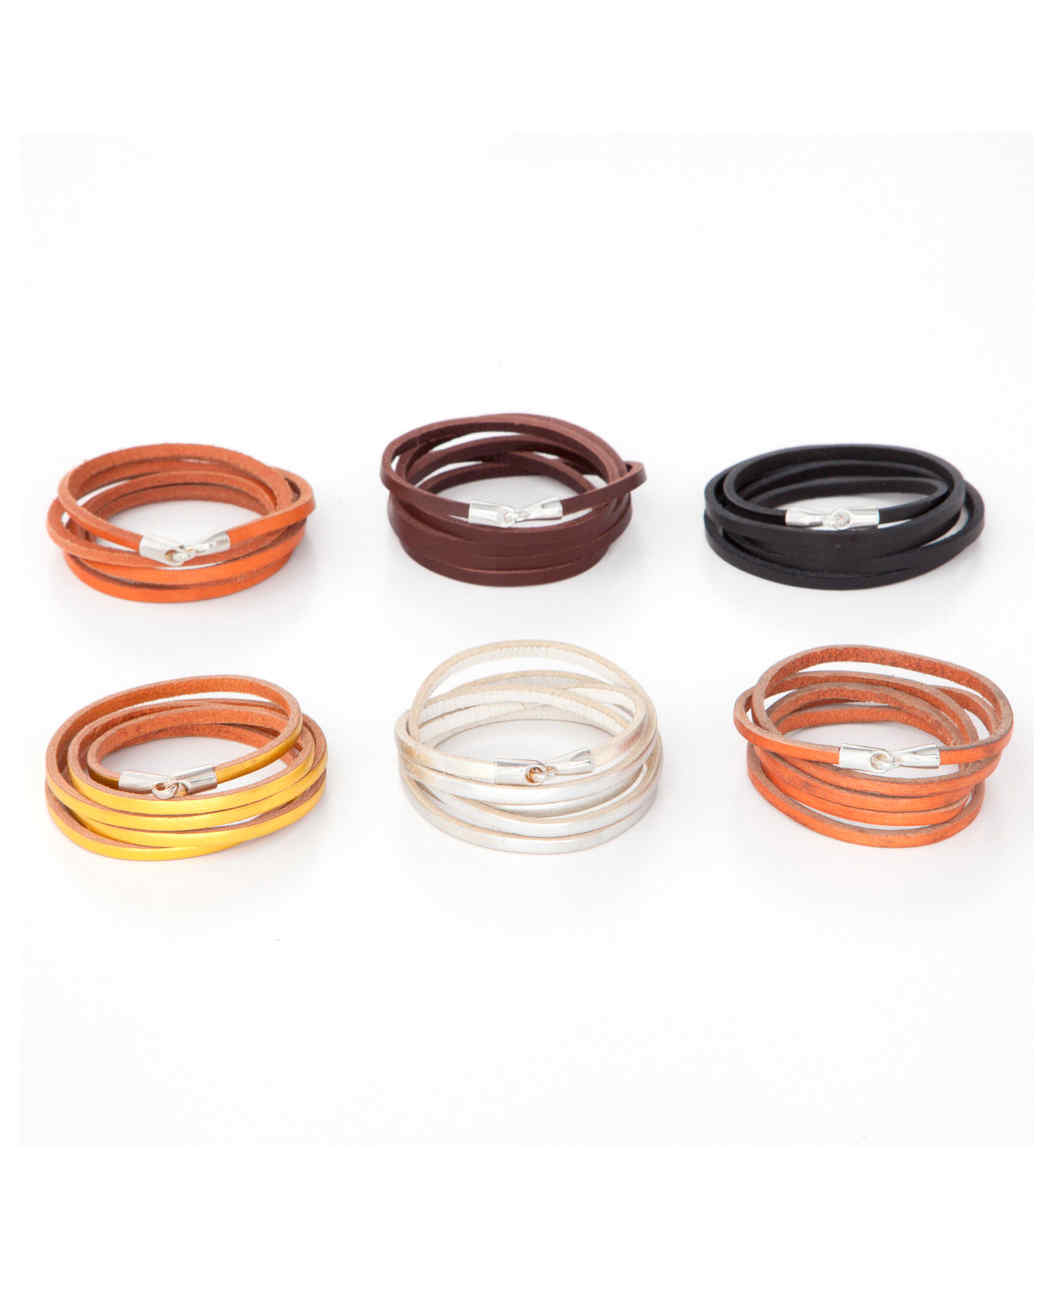 kristinewongchong-leather-wrap-bracelets-0915.jpg